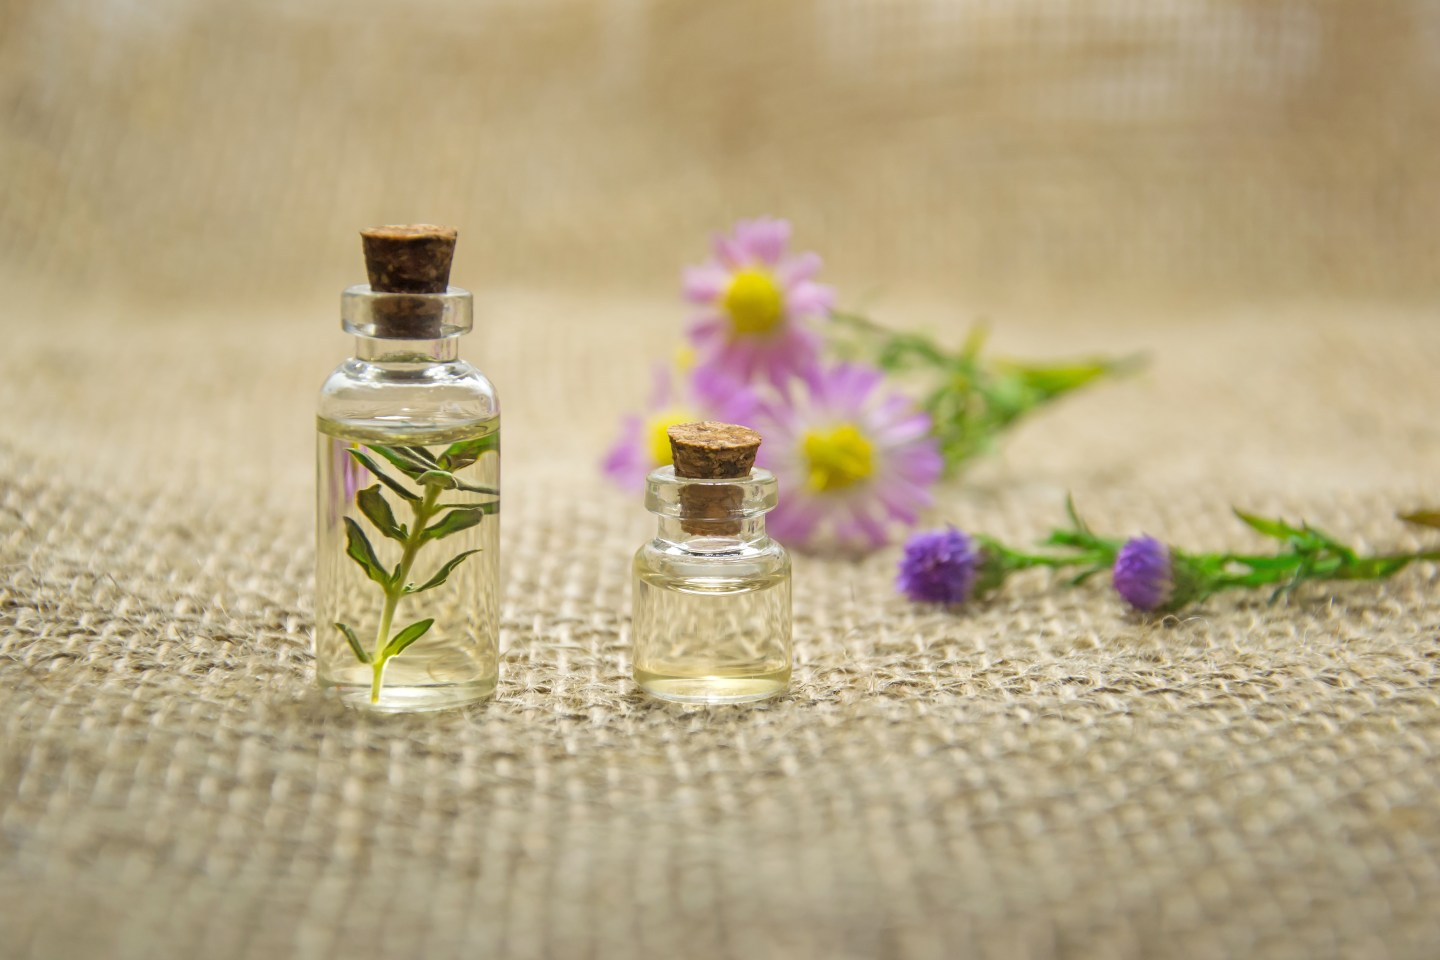 pexels photo 672051 - Sustainable Essential Oils Are Not Cheap